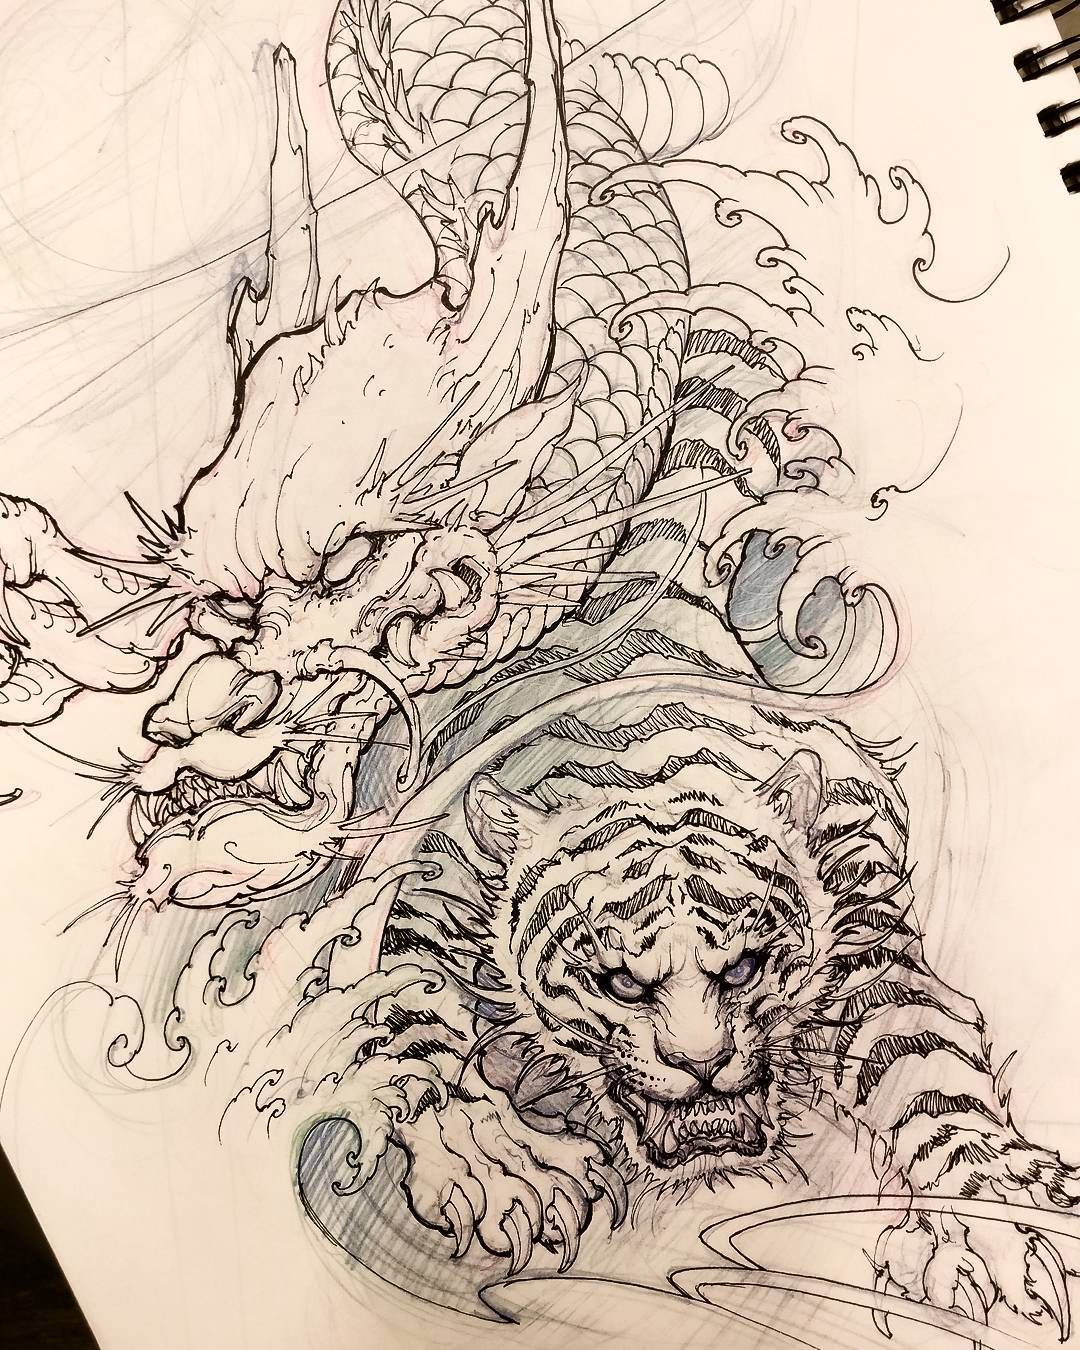 dragon and tiger sketch chronicink asiantattoo asianink irezumi tattoo sketch. Black Bedroom Furniture Sets. Home Design Ideas